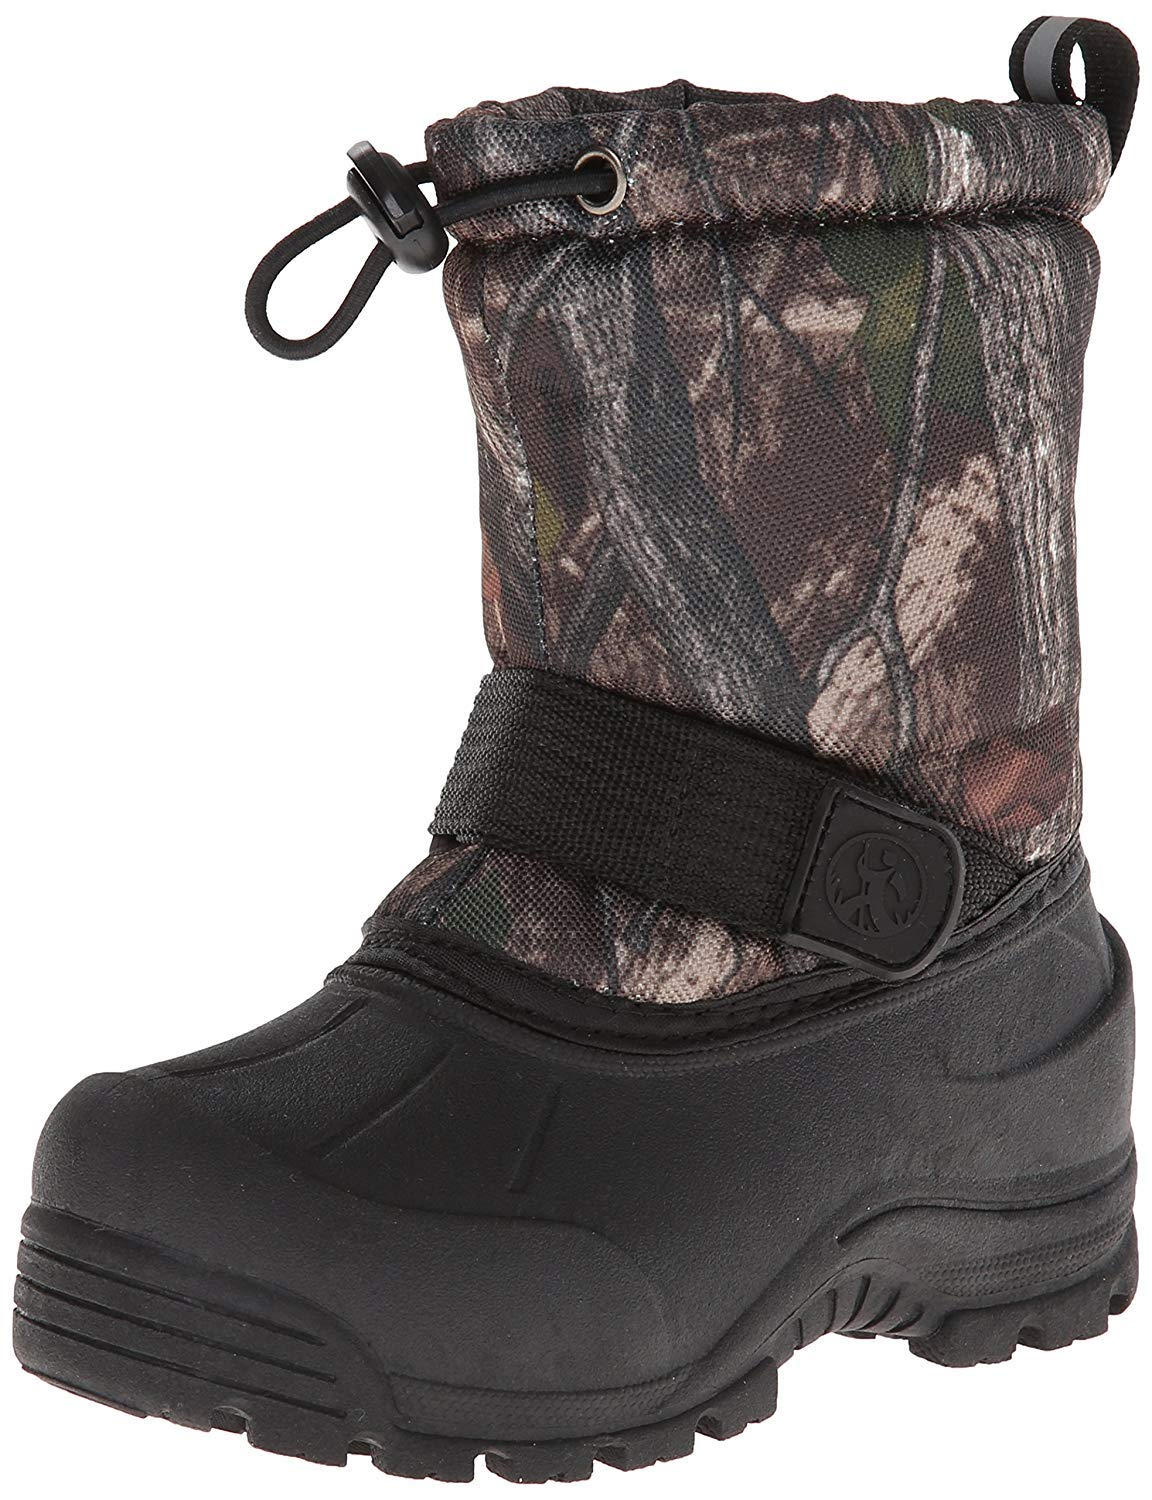 Northside Frosty Winter Boot (Toddler/Little Kid/Big Kid),Brown Camo,7 M US Toddler